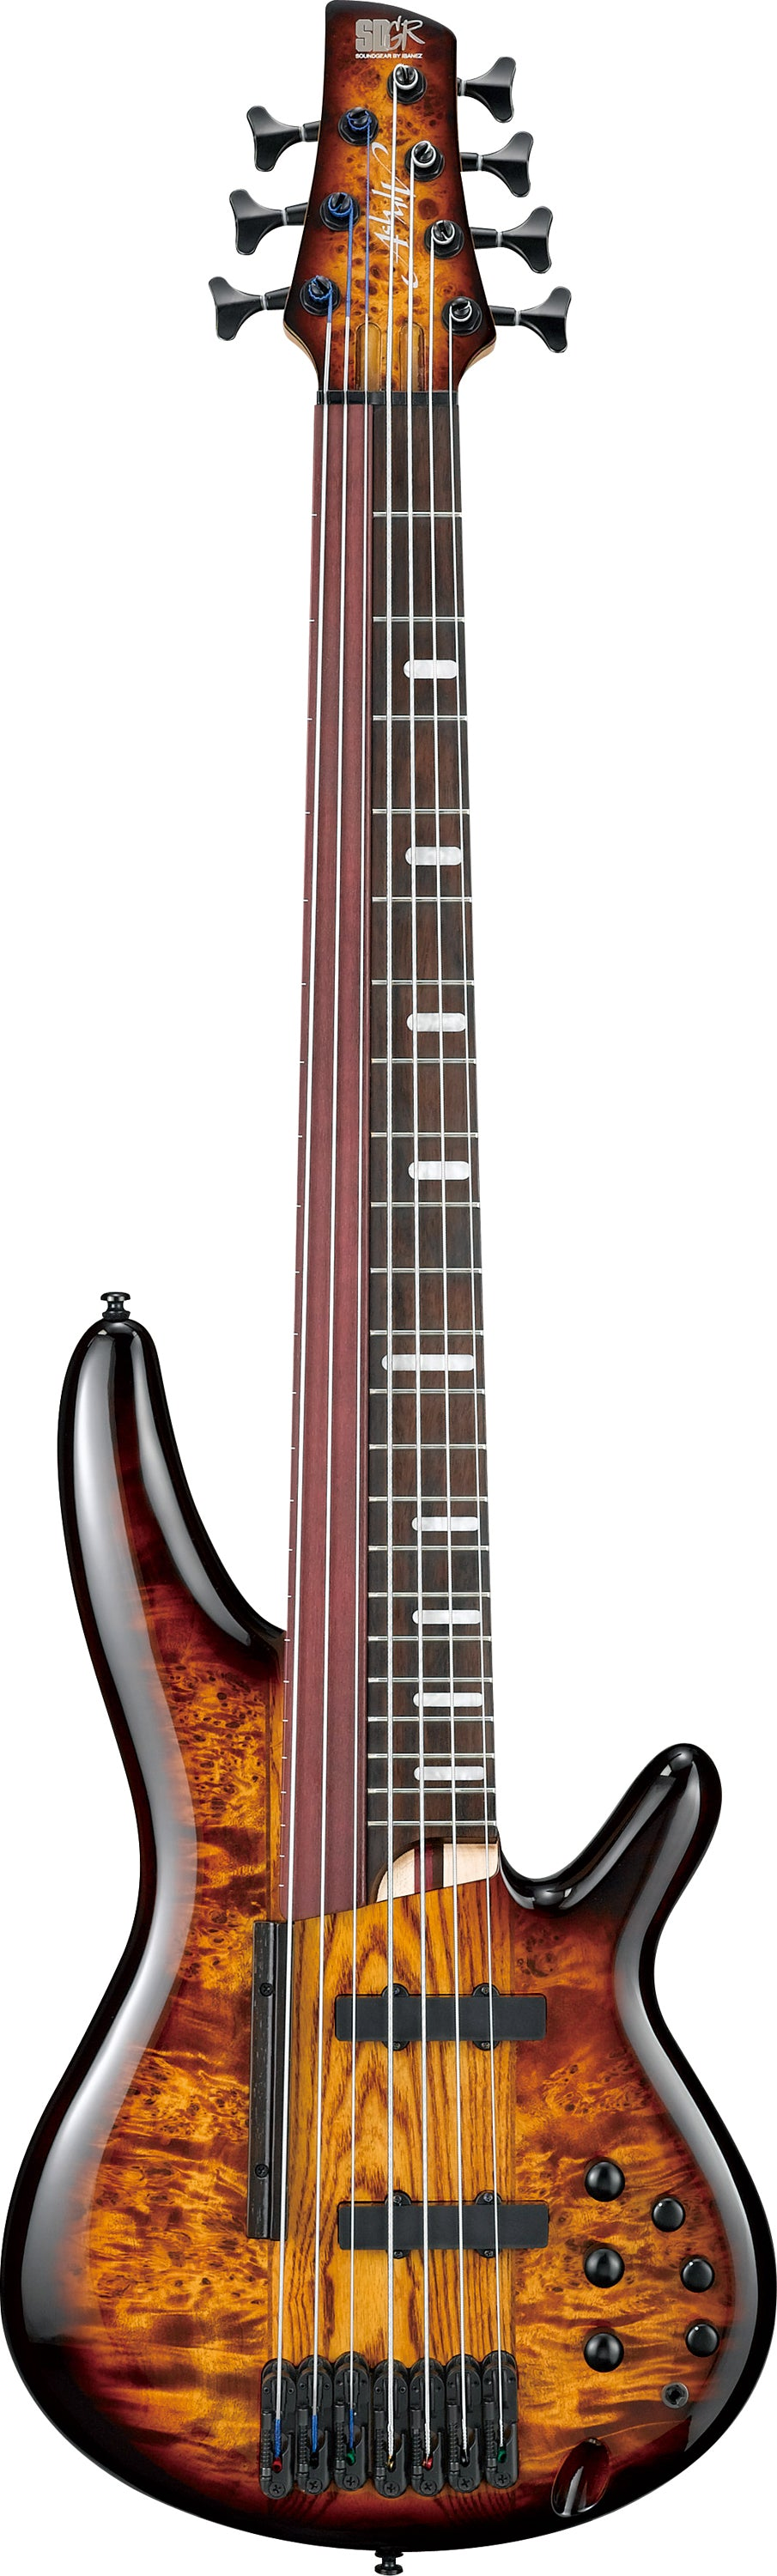 Ibanez SRAS7-DEB Workshop 7 String Bass Guitar - Dragon Eye Burst